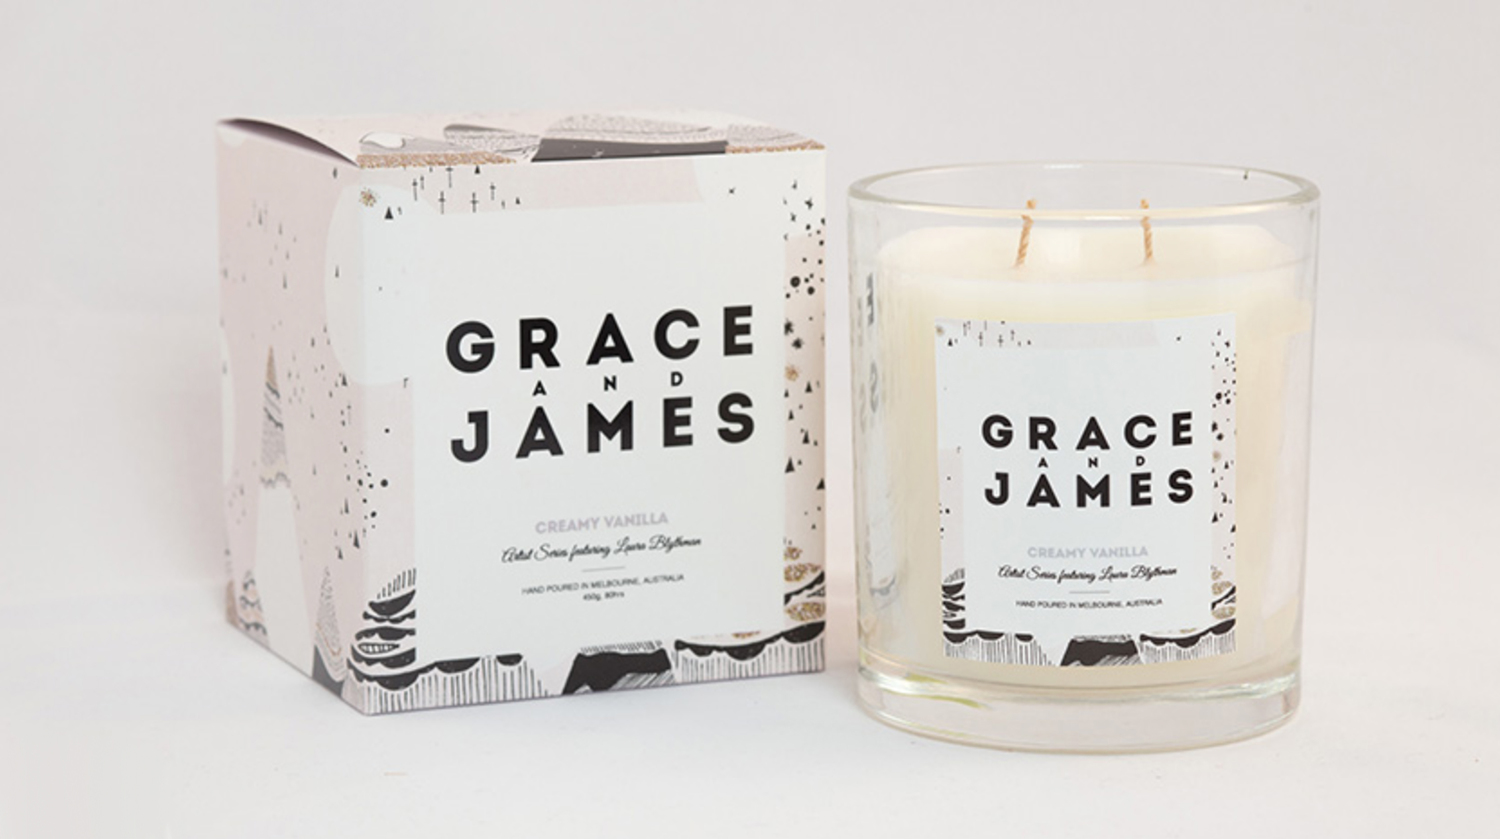 Grace and James Candle Packaging 2